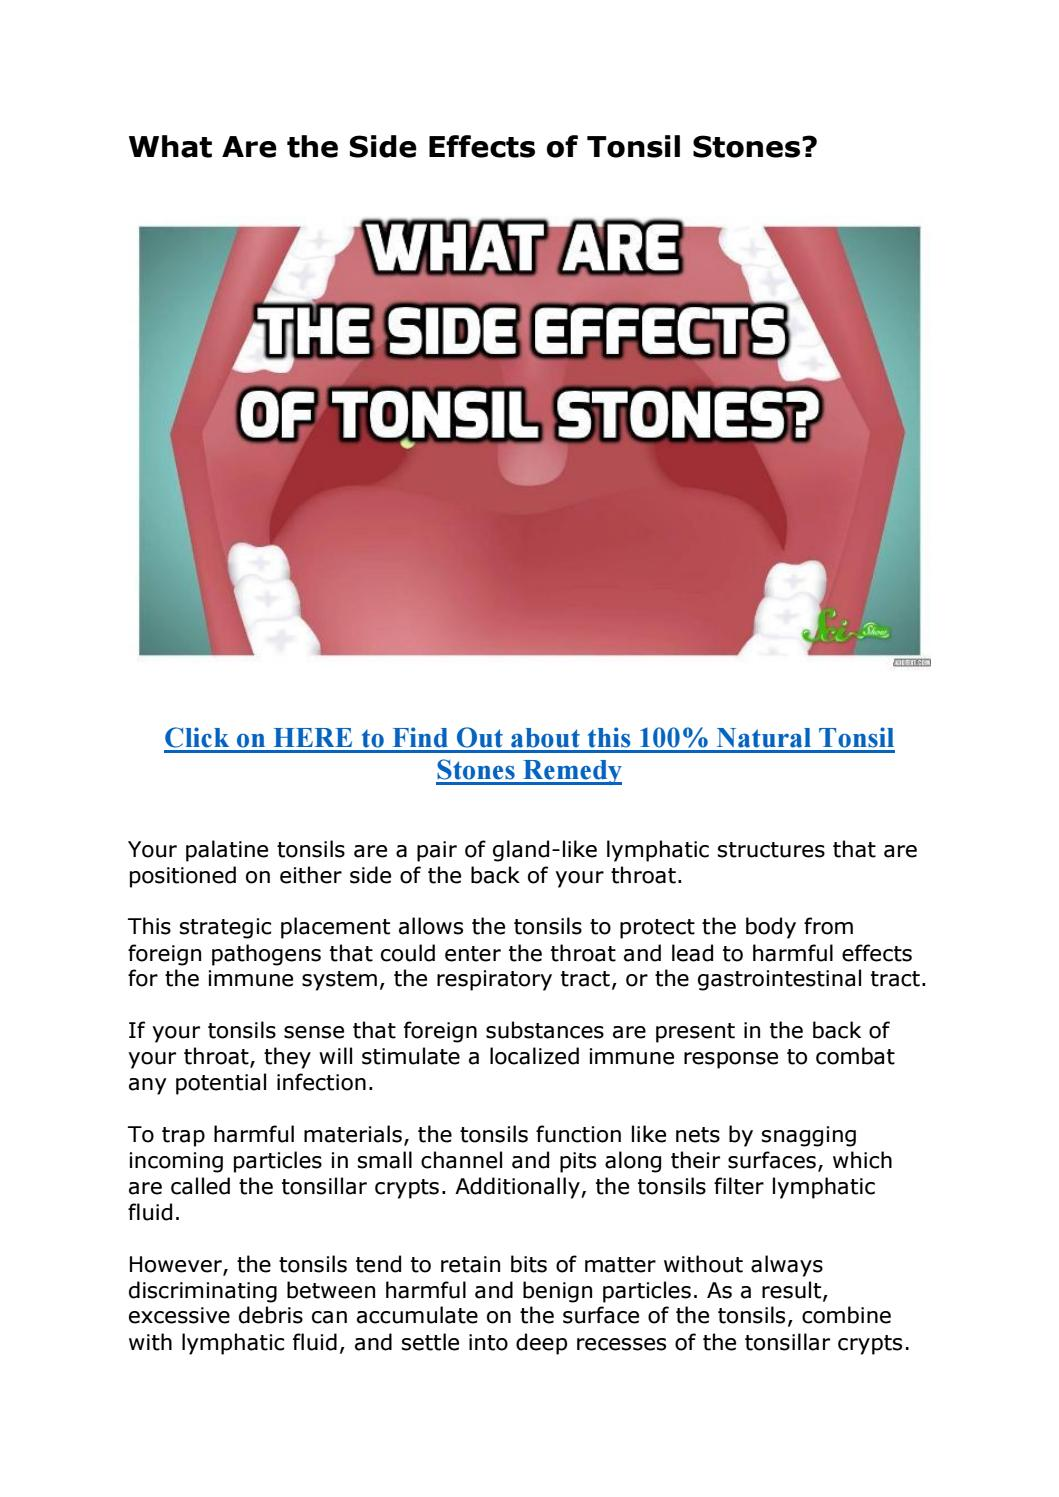 What Are The Side Effects Of Tonsil Stones By Anti Aging Beauty